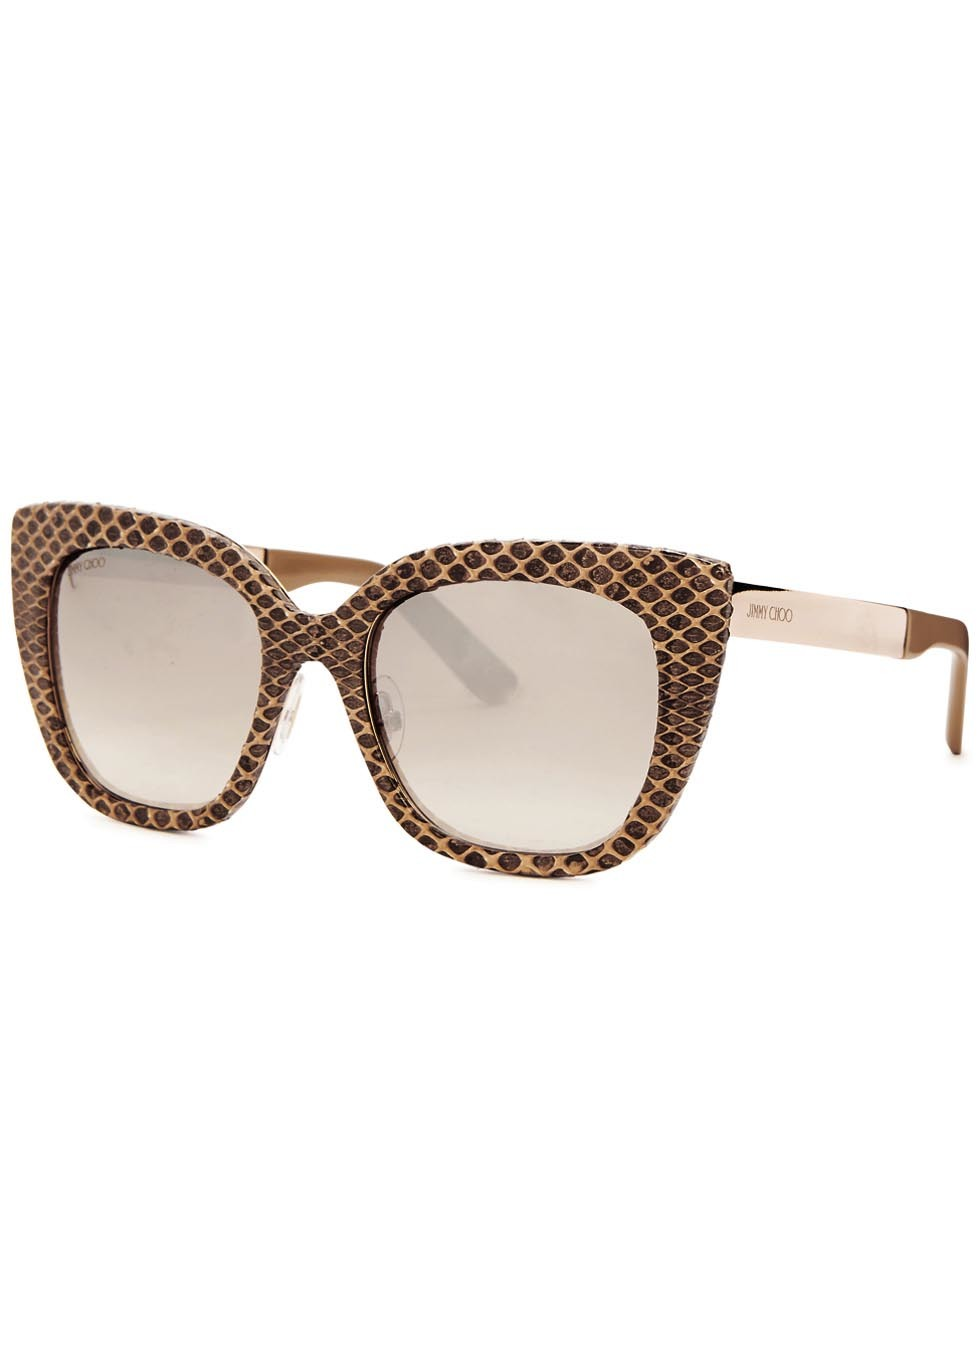 Nita Snake Effect Leather Cat Eye Sunglasses - predominant colour: chocolate brown; occasions: casual, holiday; style: cateye; size: large; material: plastic/rubber; finish: plain; pattern: patterned/print; season: a/w 2015; wardrobe: highlight